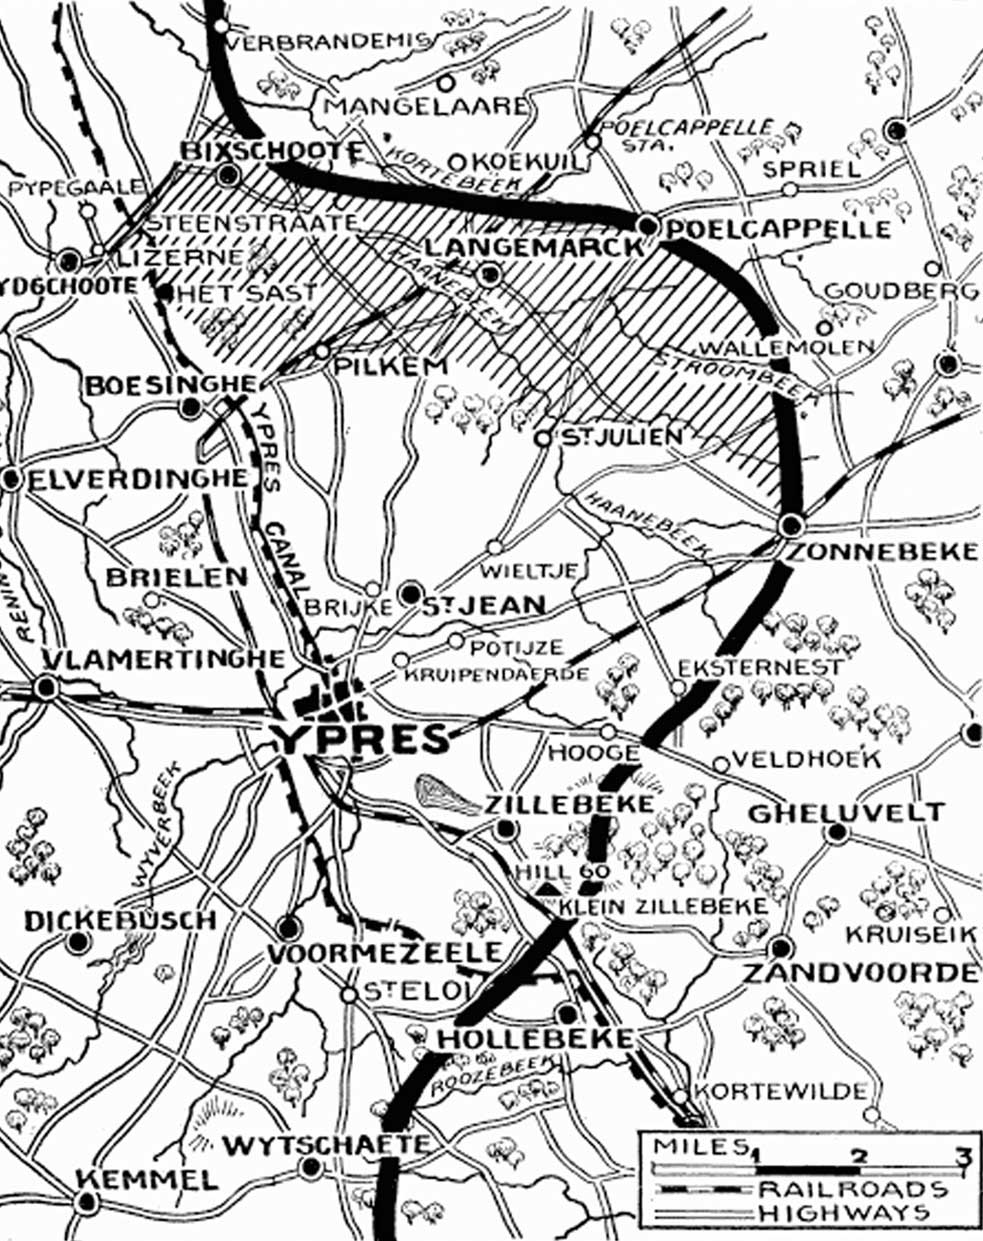 30th April - Positions before the British pullback